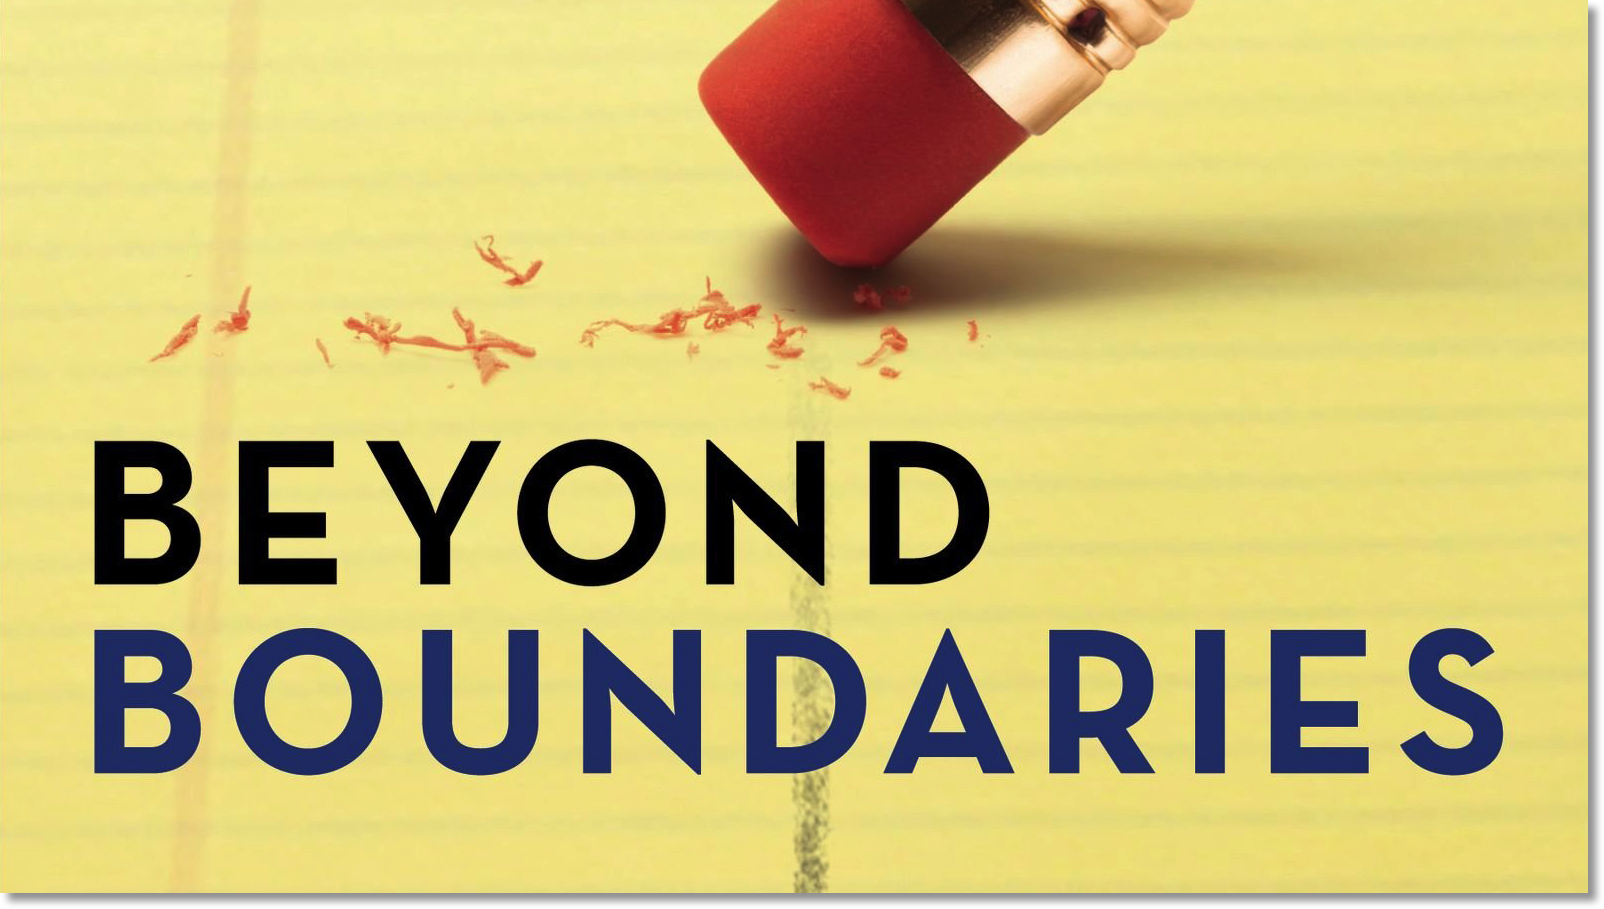 beyond_boundaries_banner_16x9